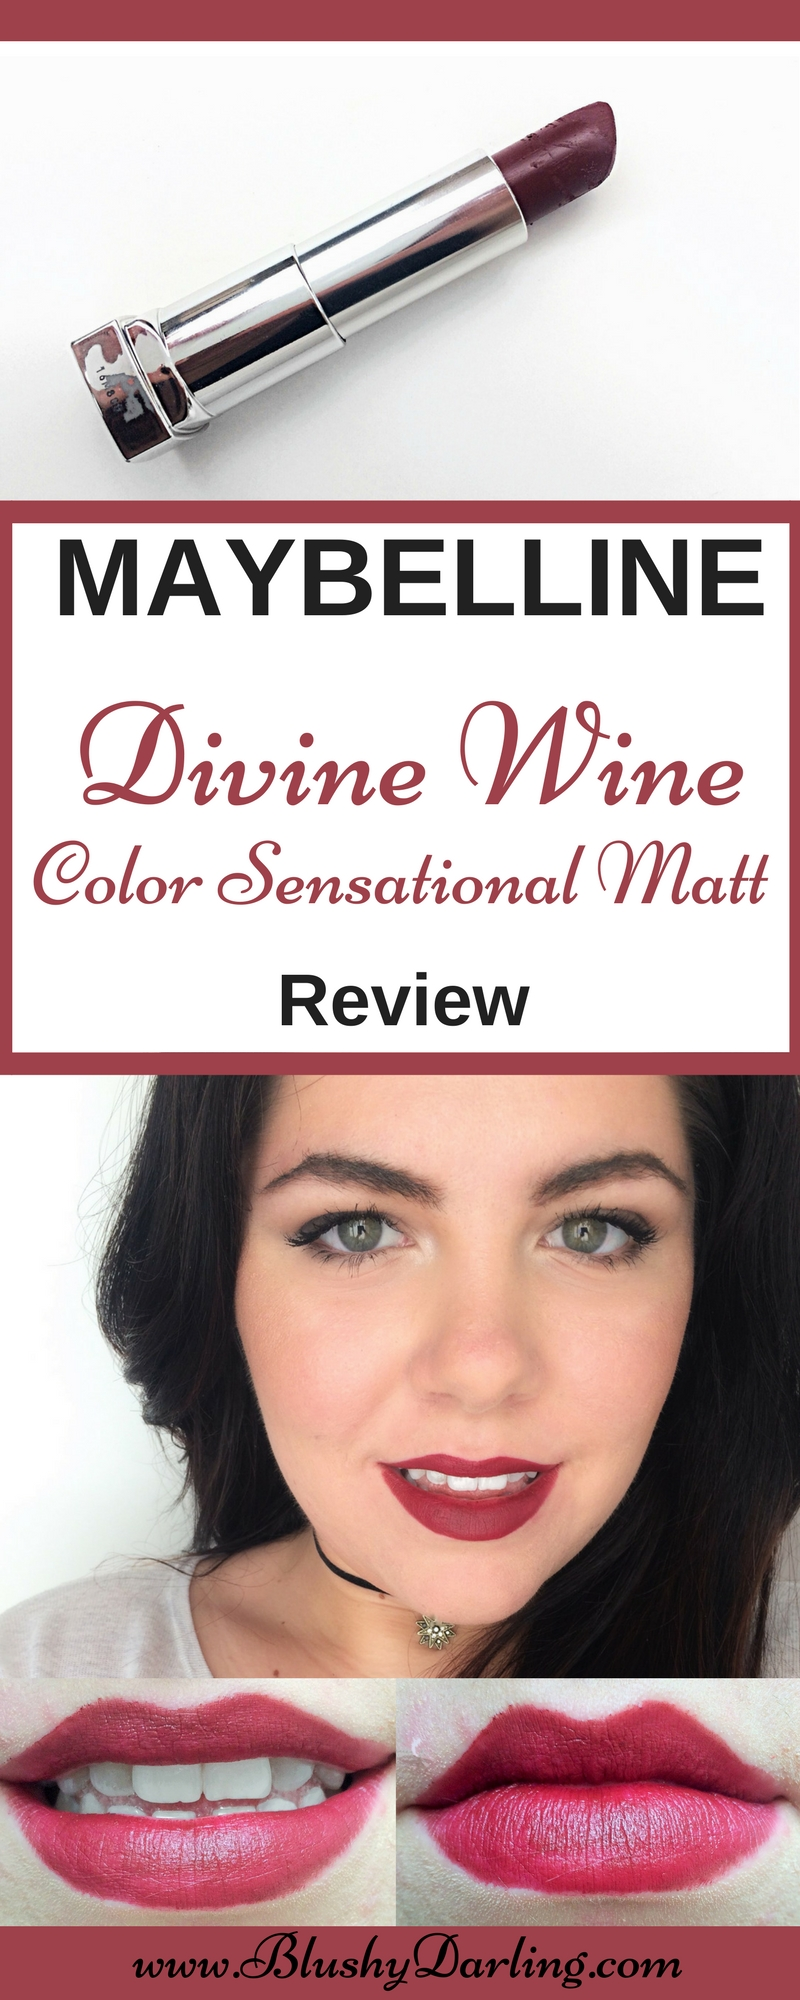 Maybelline Colour Sensational Matte Divine Wine (8)